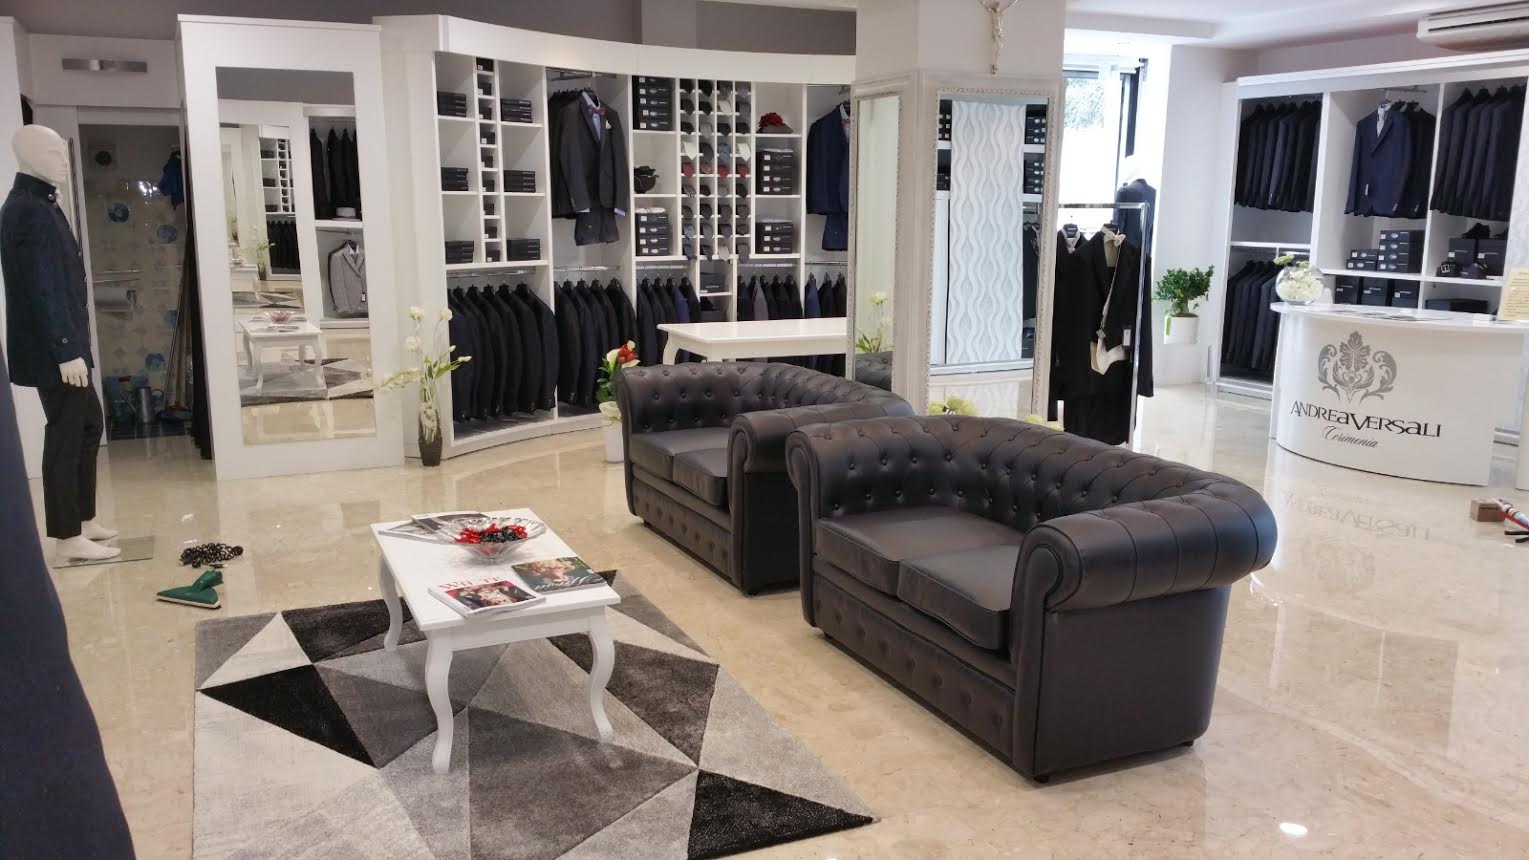 Design and preparation Clothing store